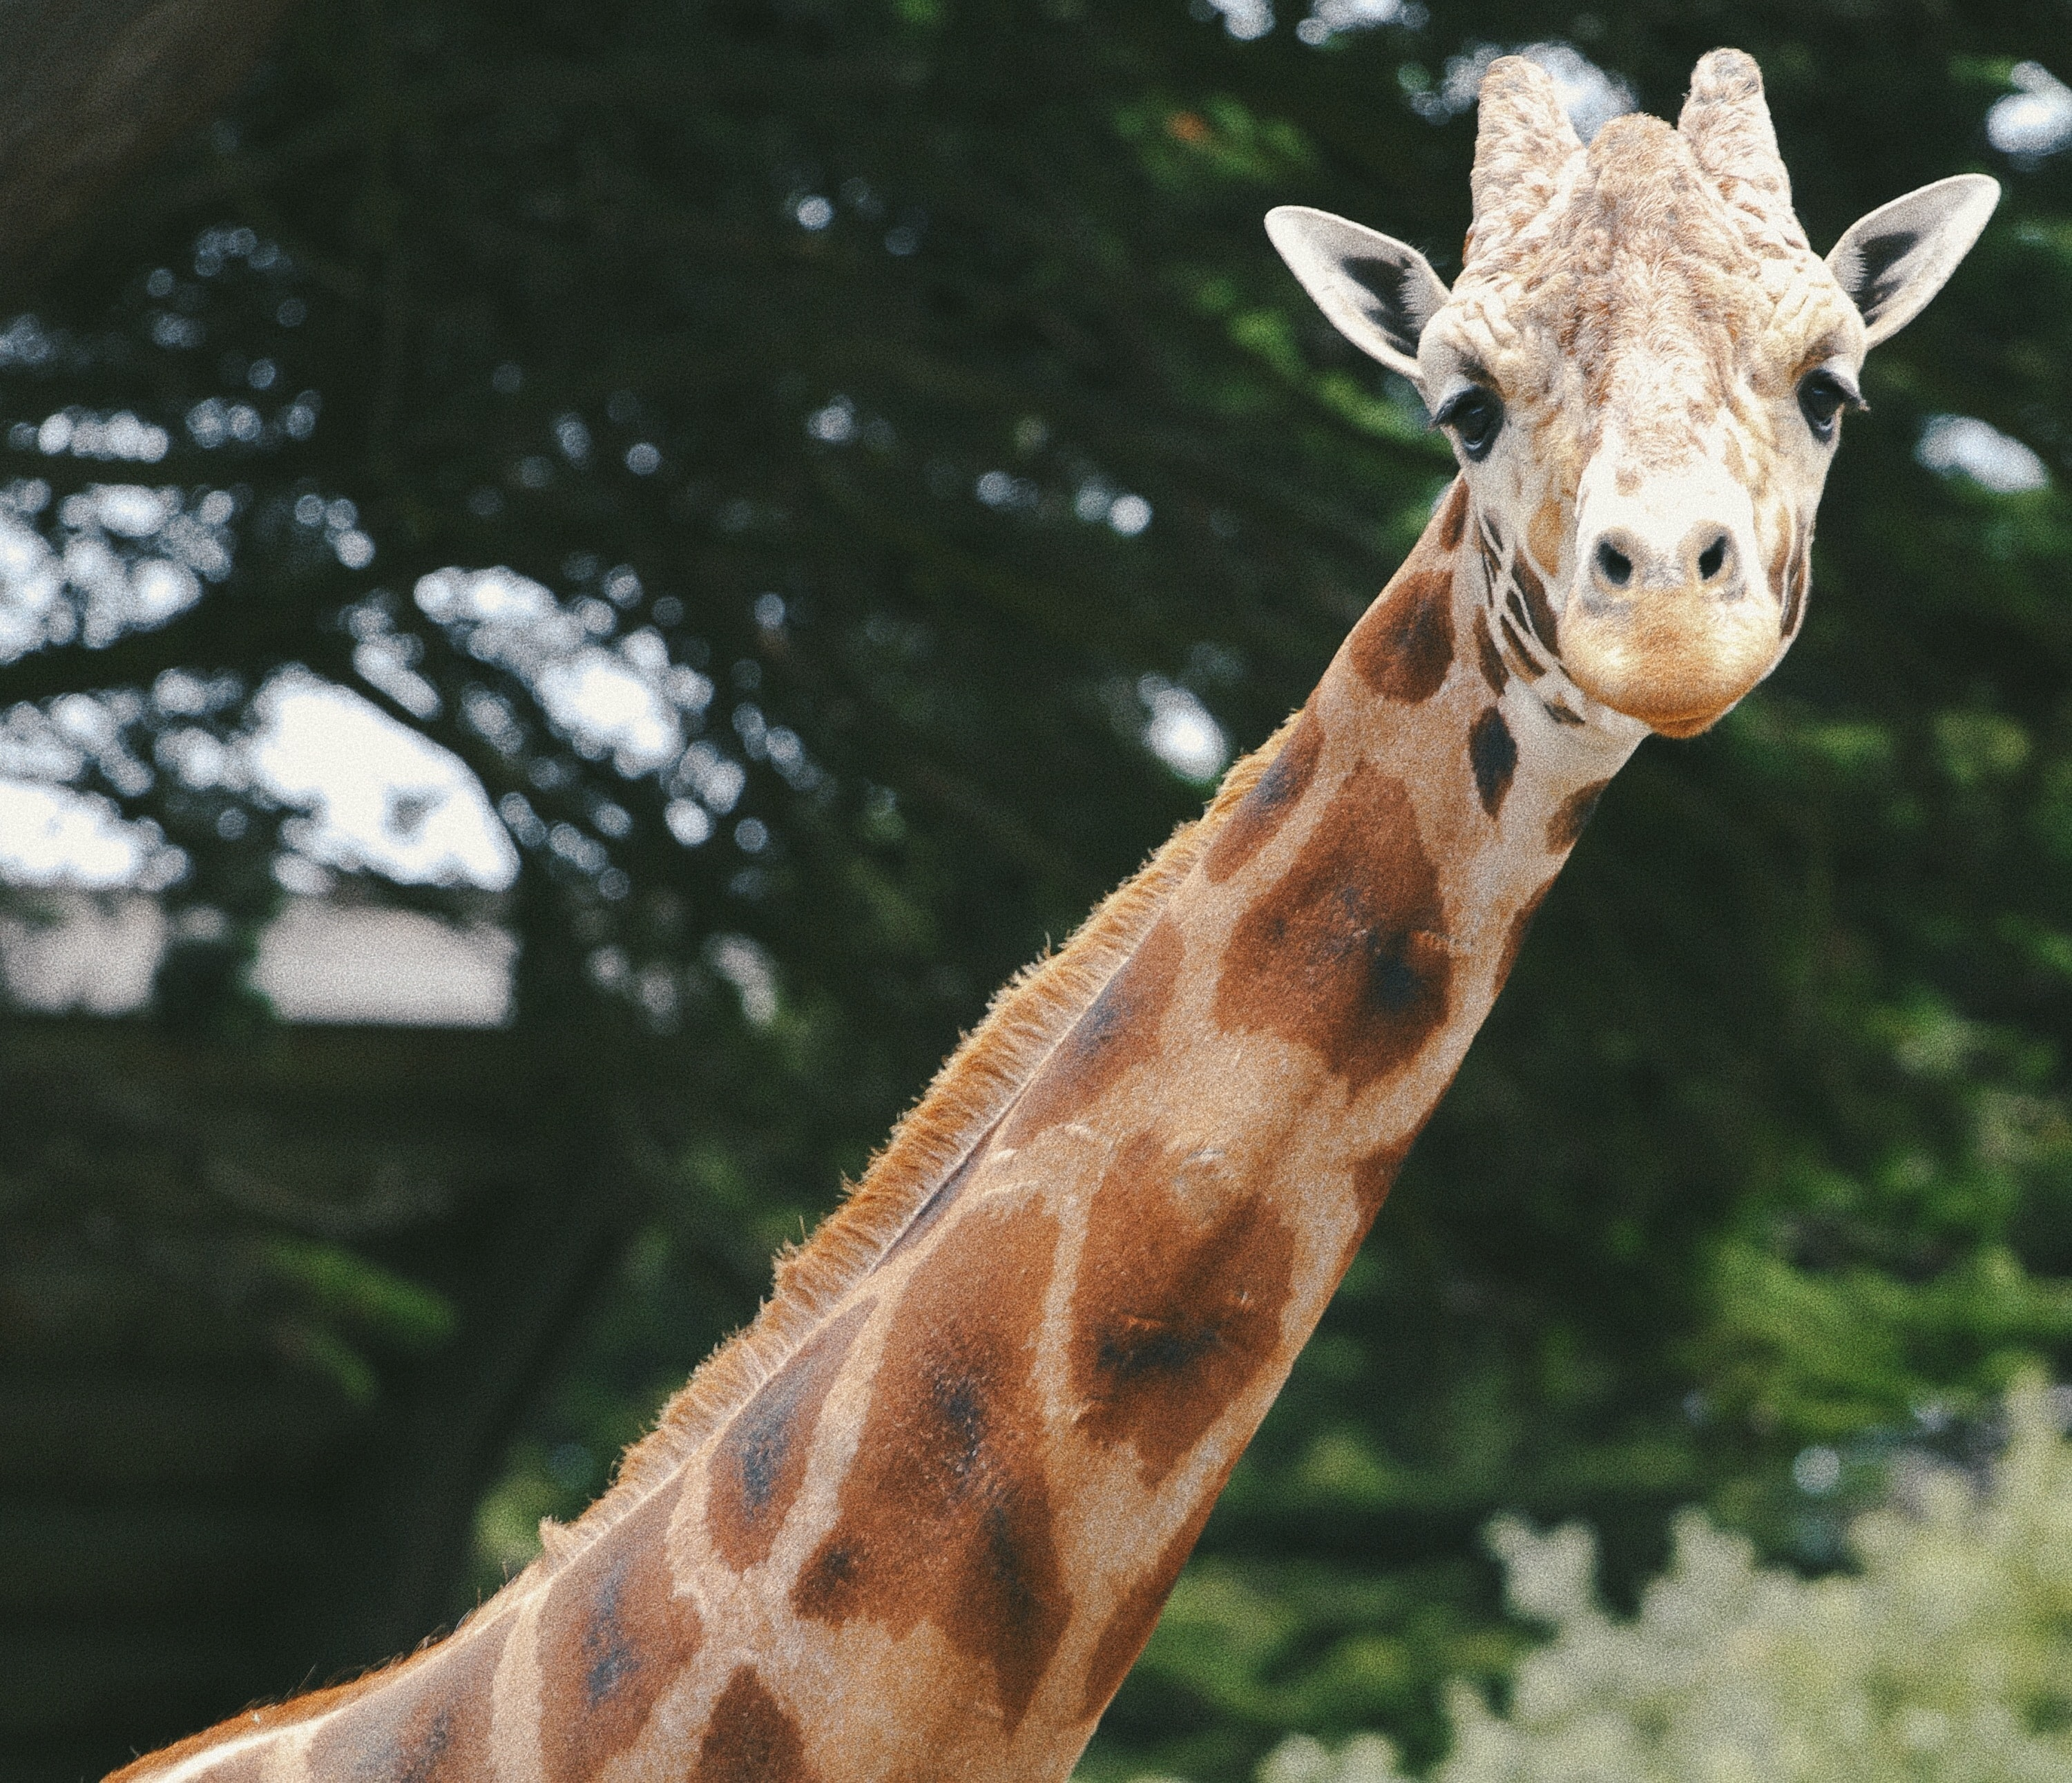 Giraffe with eyes half closed staring at camera with a tree behind it